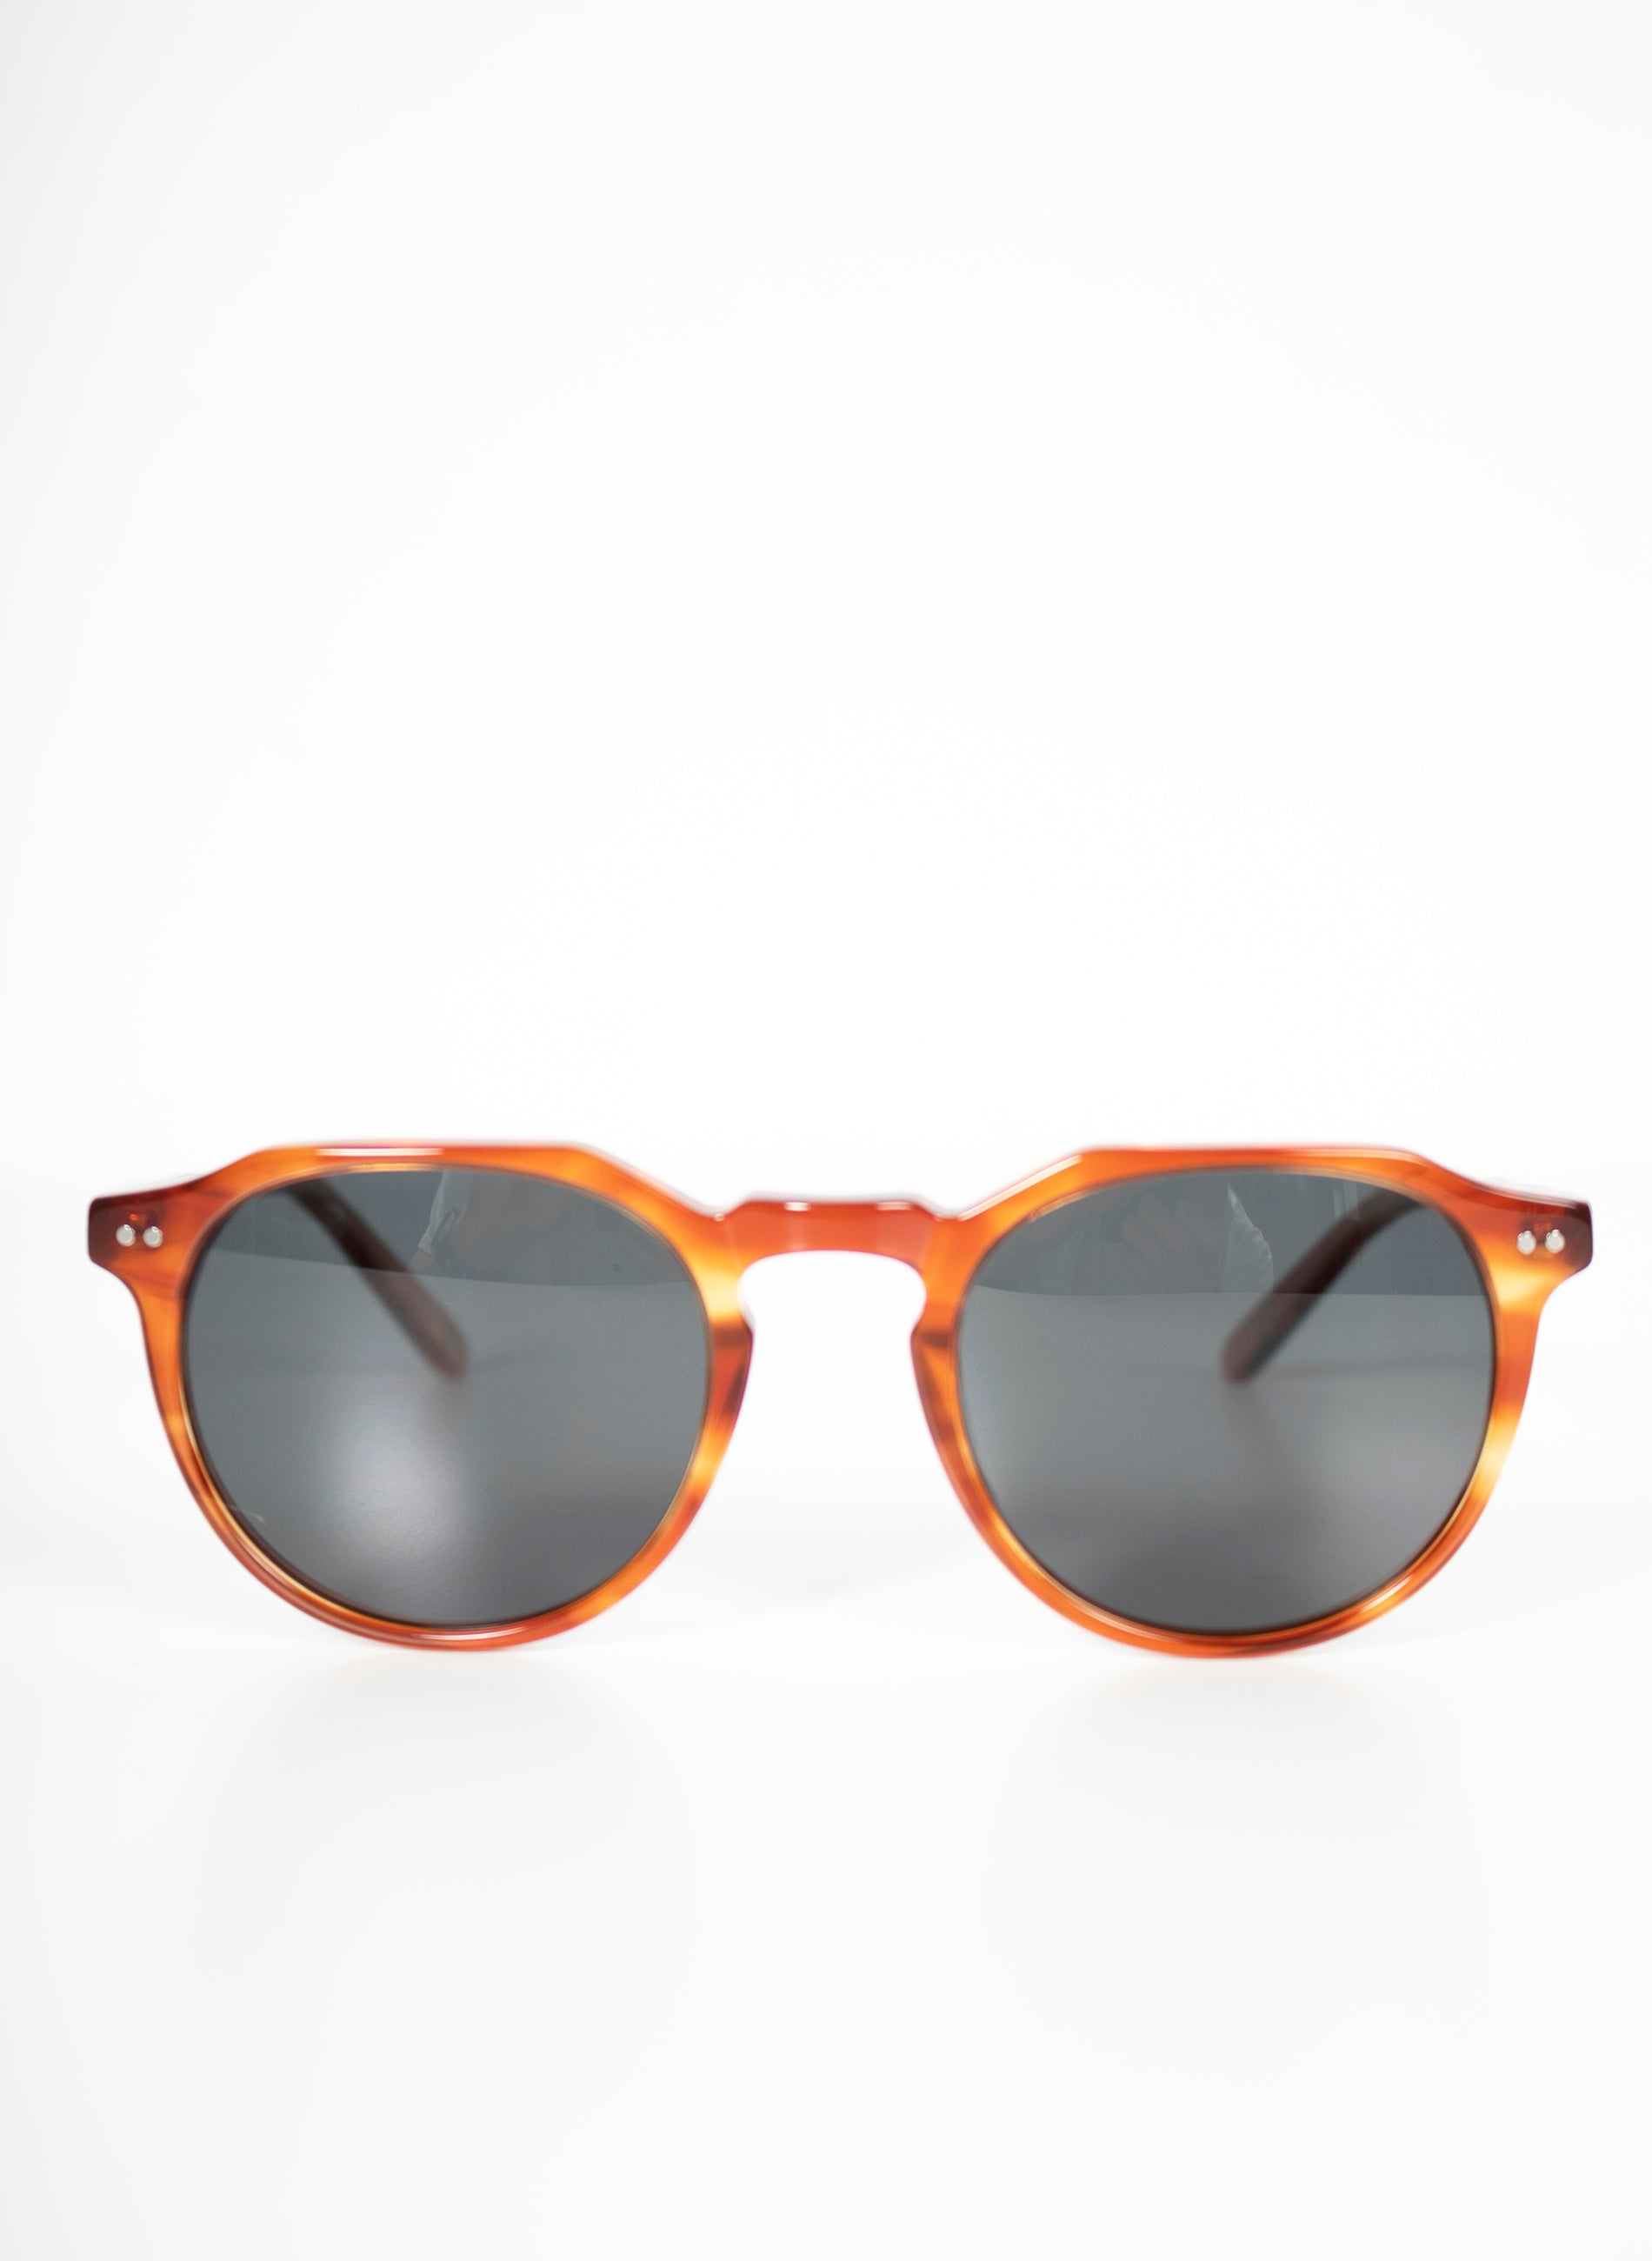 Tom Spain Sonnenbrille